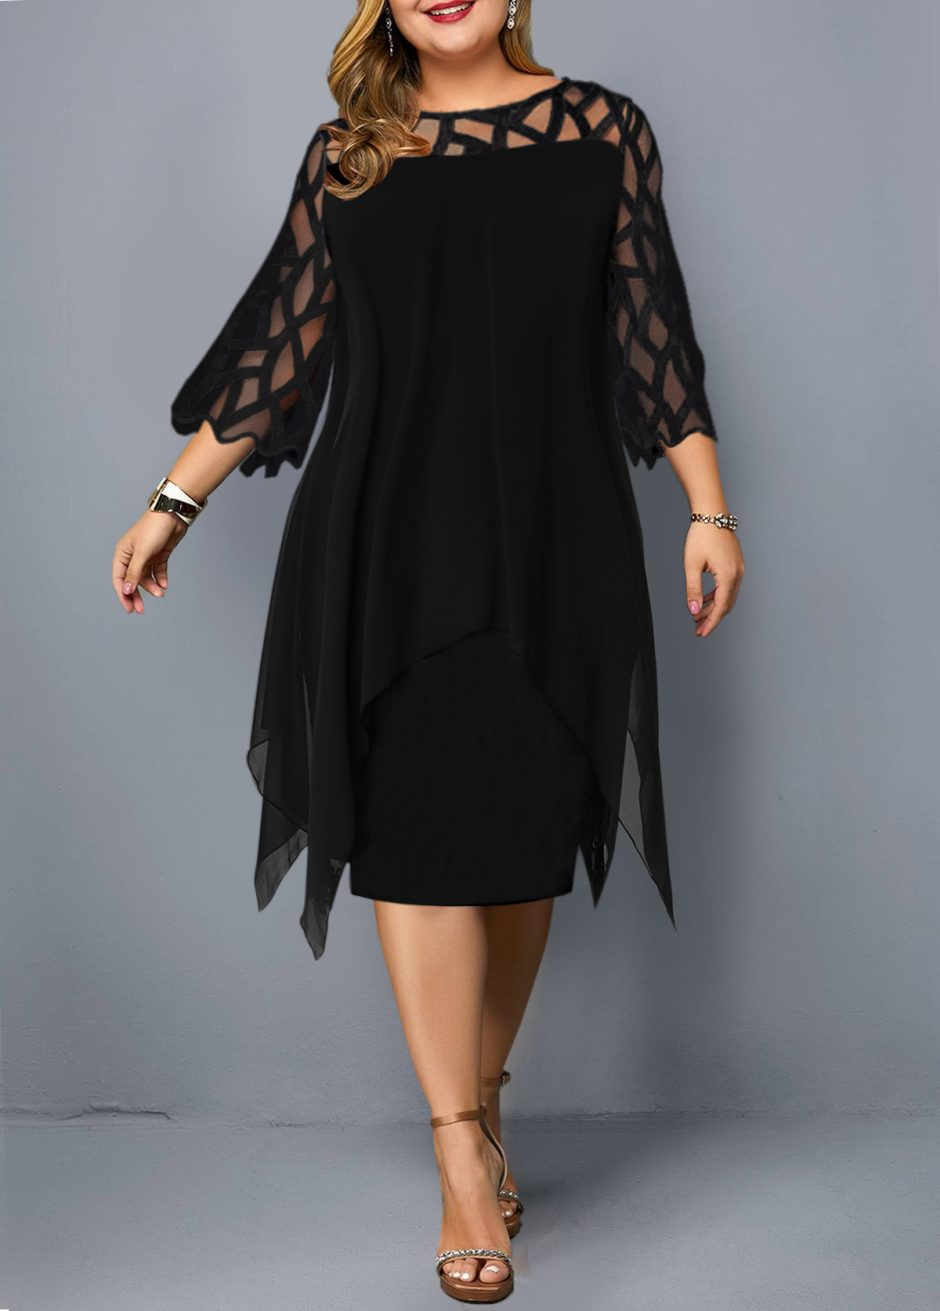 228147 G 1564389328449 940x1311 - Plus size black dress